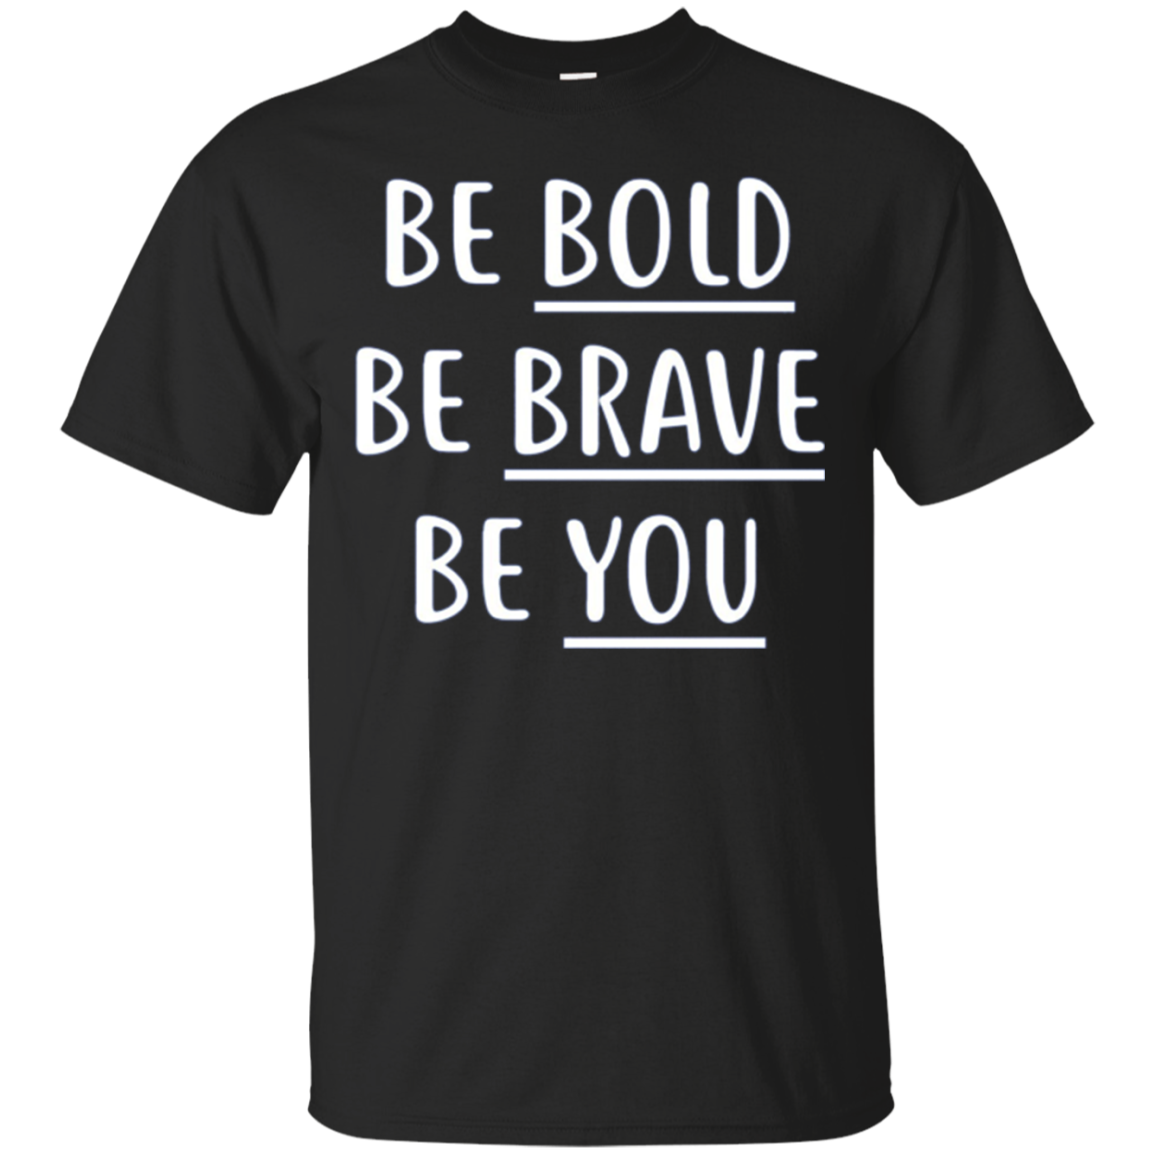 BE BOLD BE BRAVE BE YOU SHIRT SARCASTIC MOTHER'S DAY GIFT